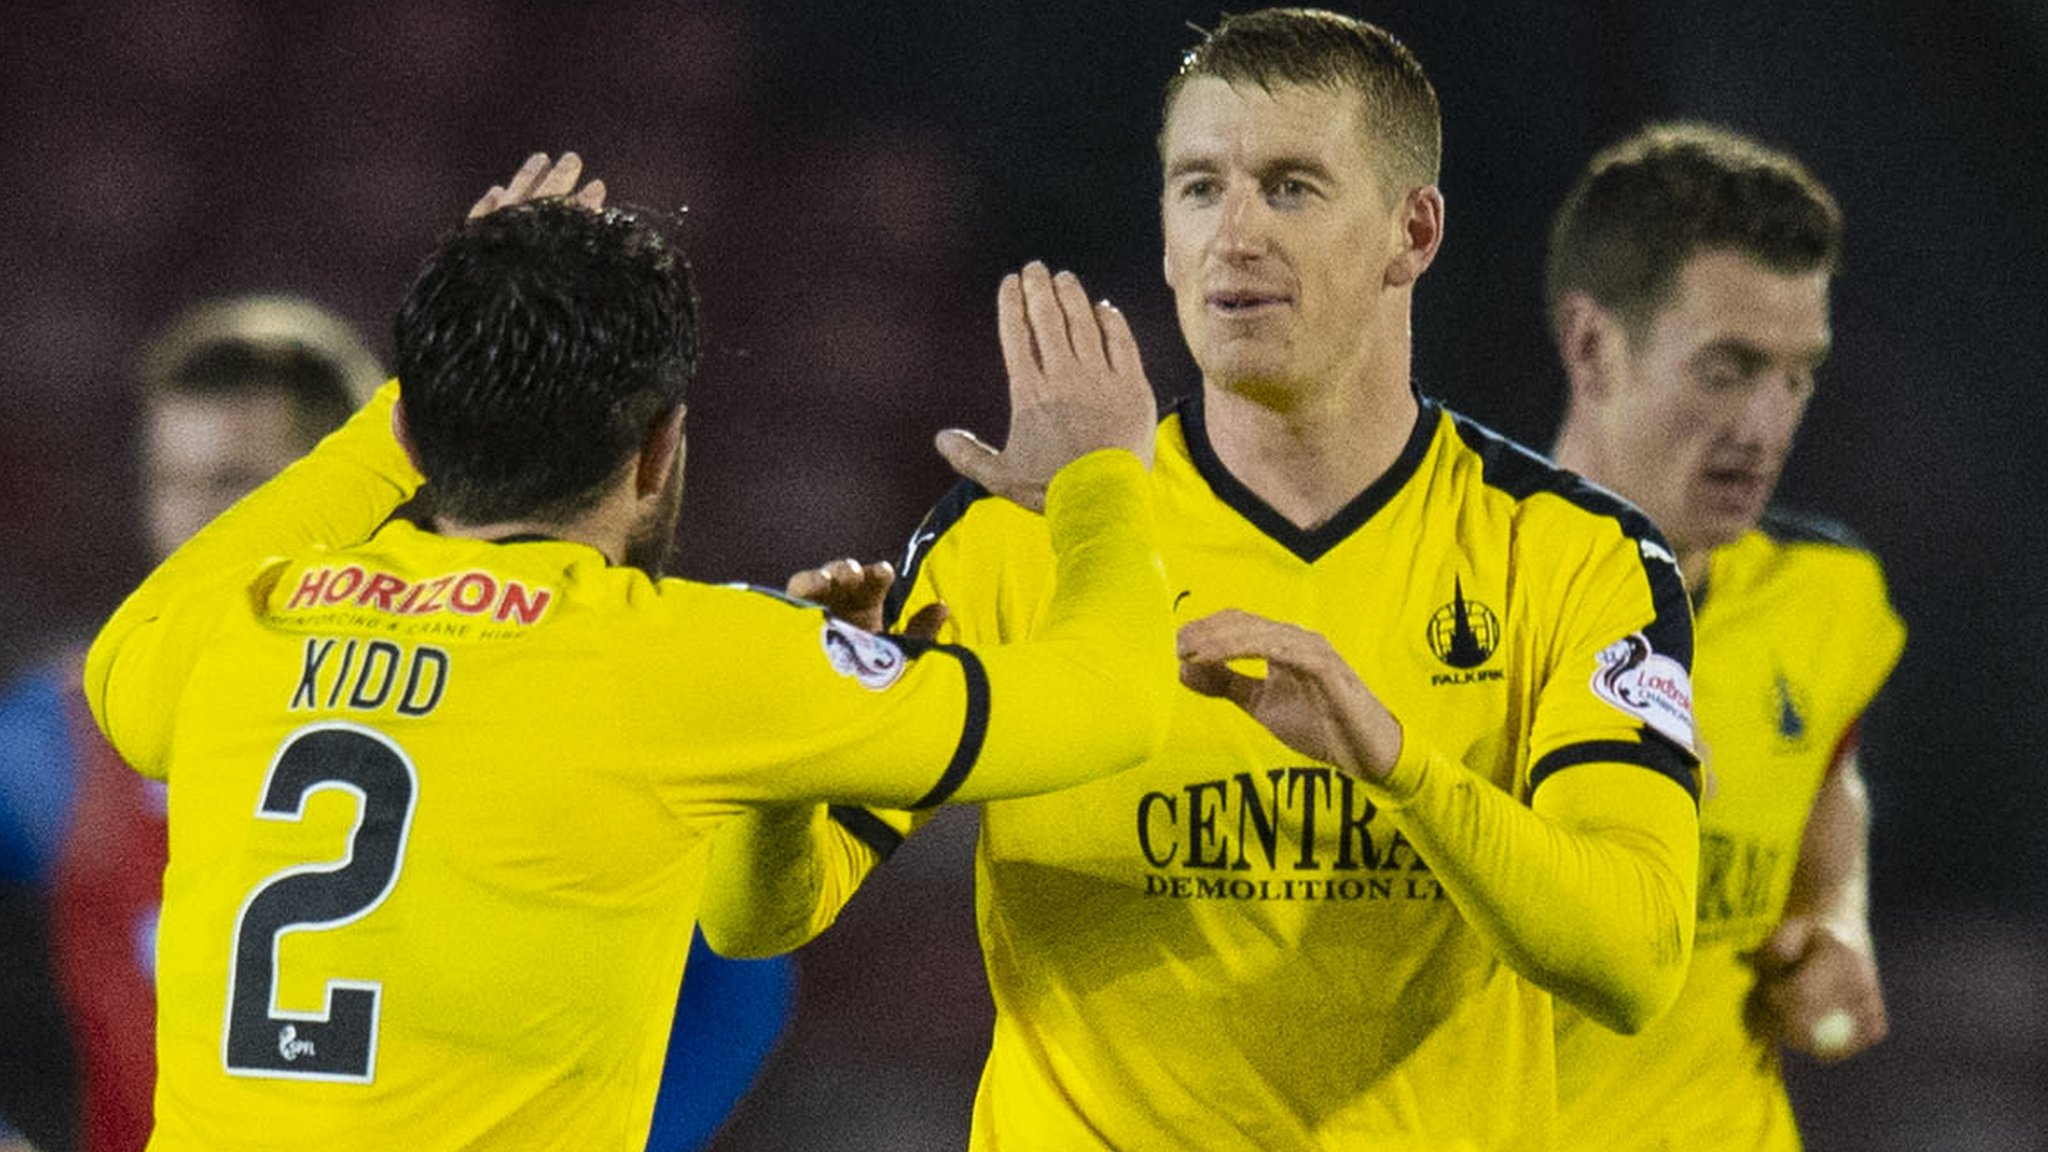 Inverness CT 2-3 Falkirk: Ray McKinnon's side end hosts' unbeaten run